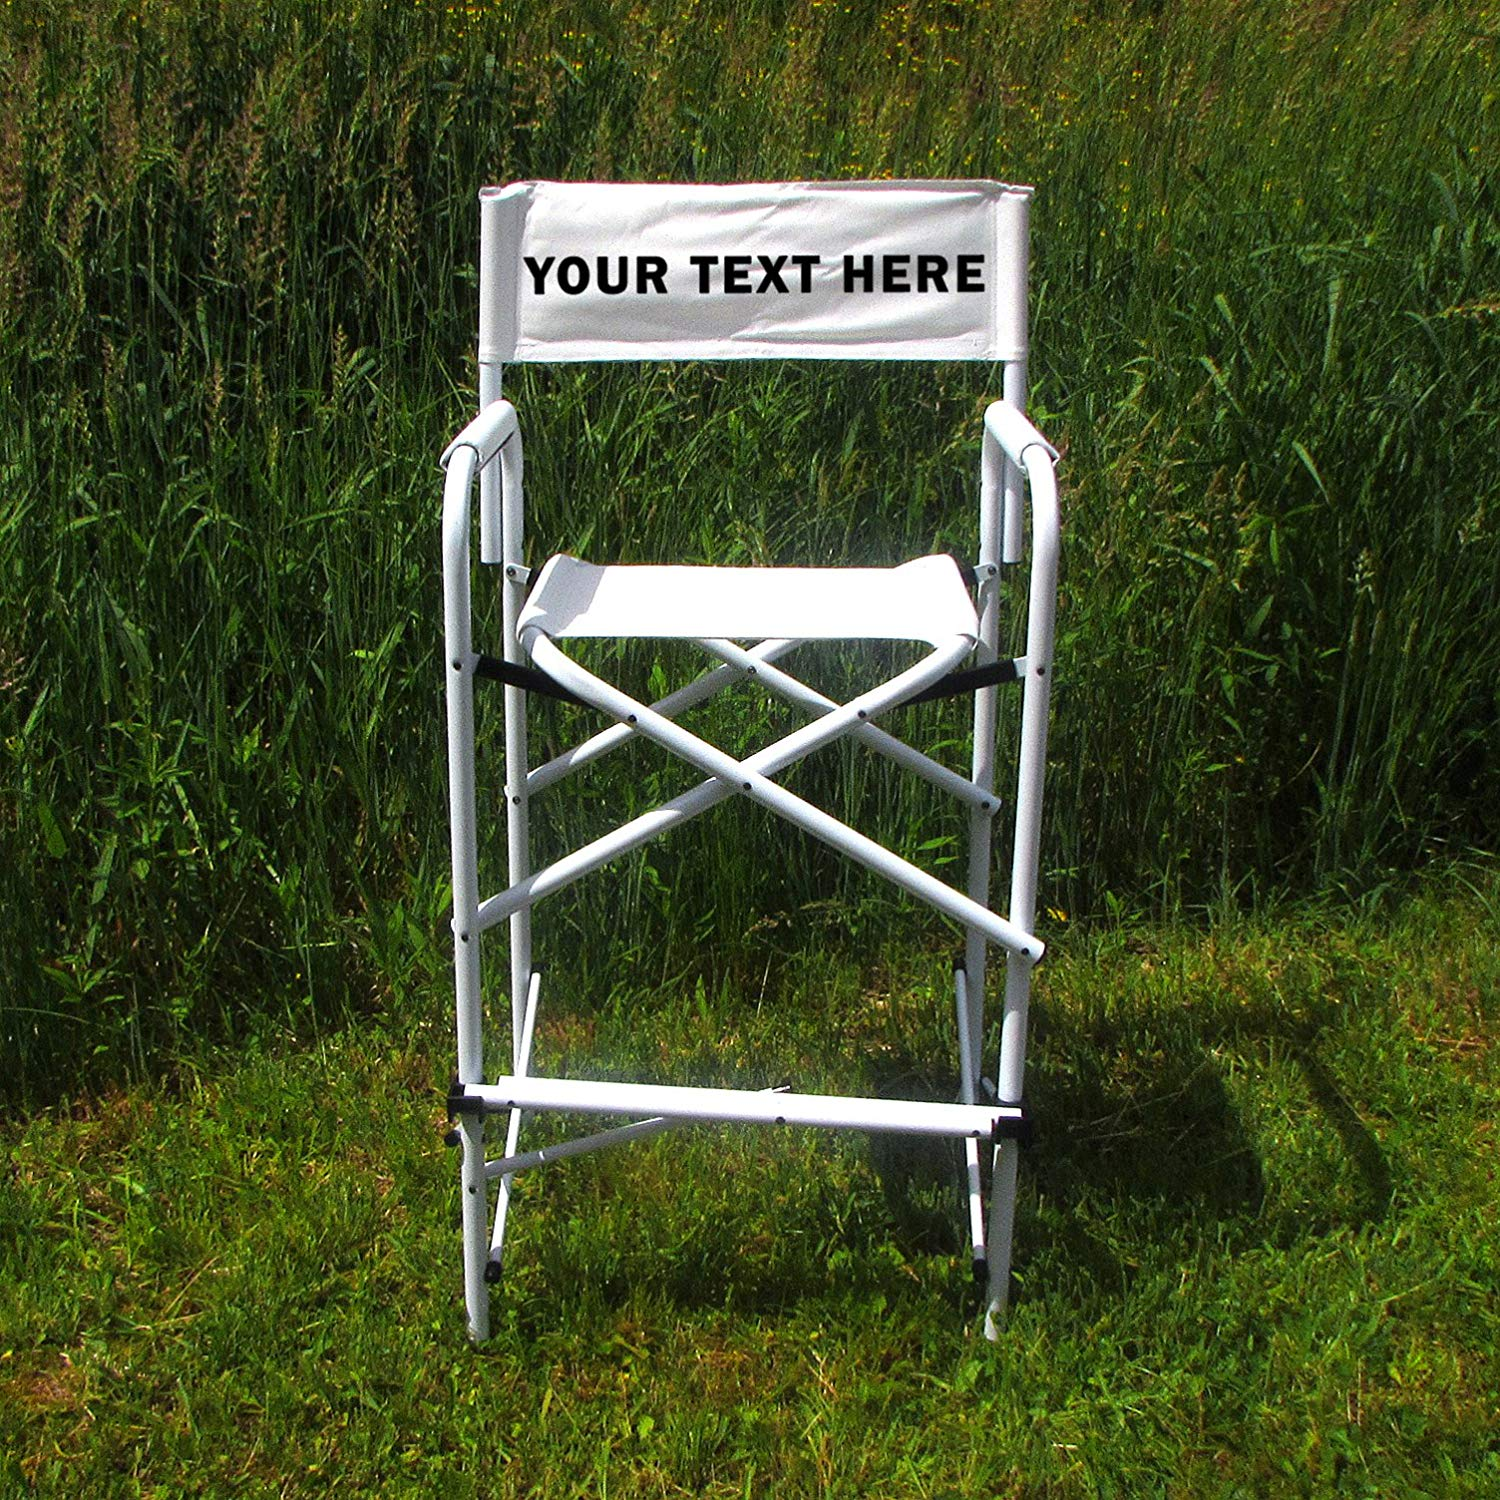 "PERSONALIZED IMPRINTED All Aluminum 30"" Tall Directors Chair by E-Z Up - White"